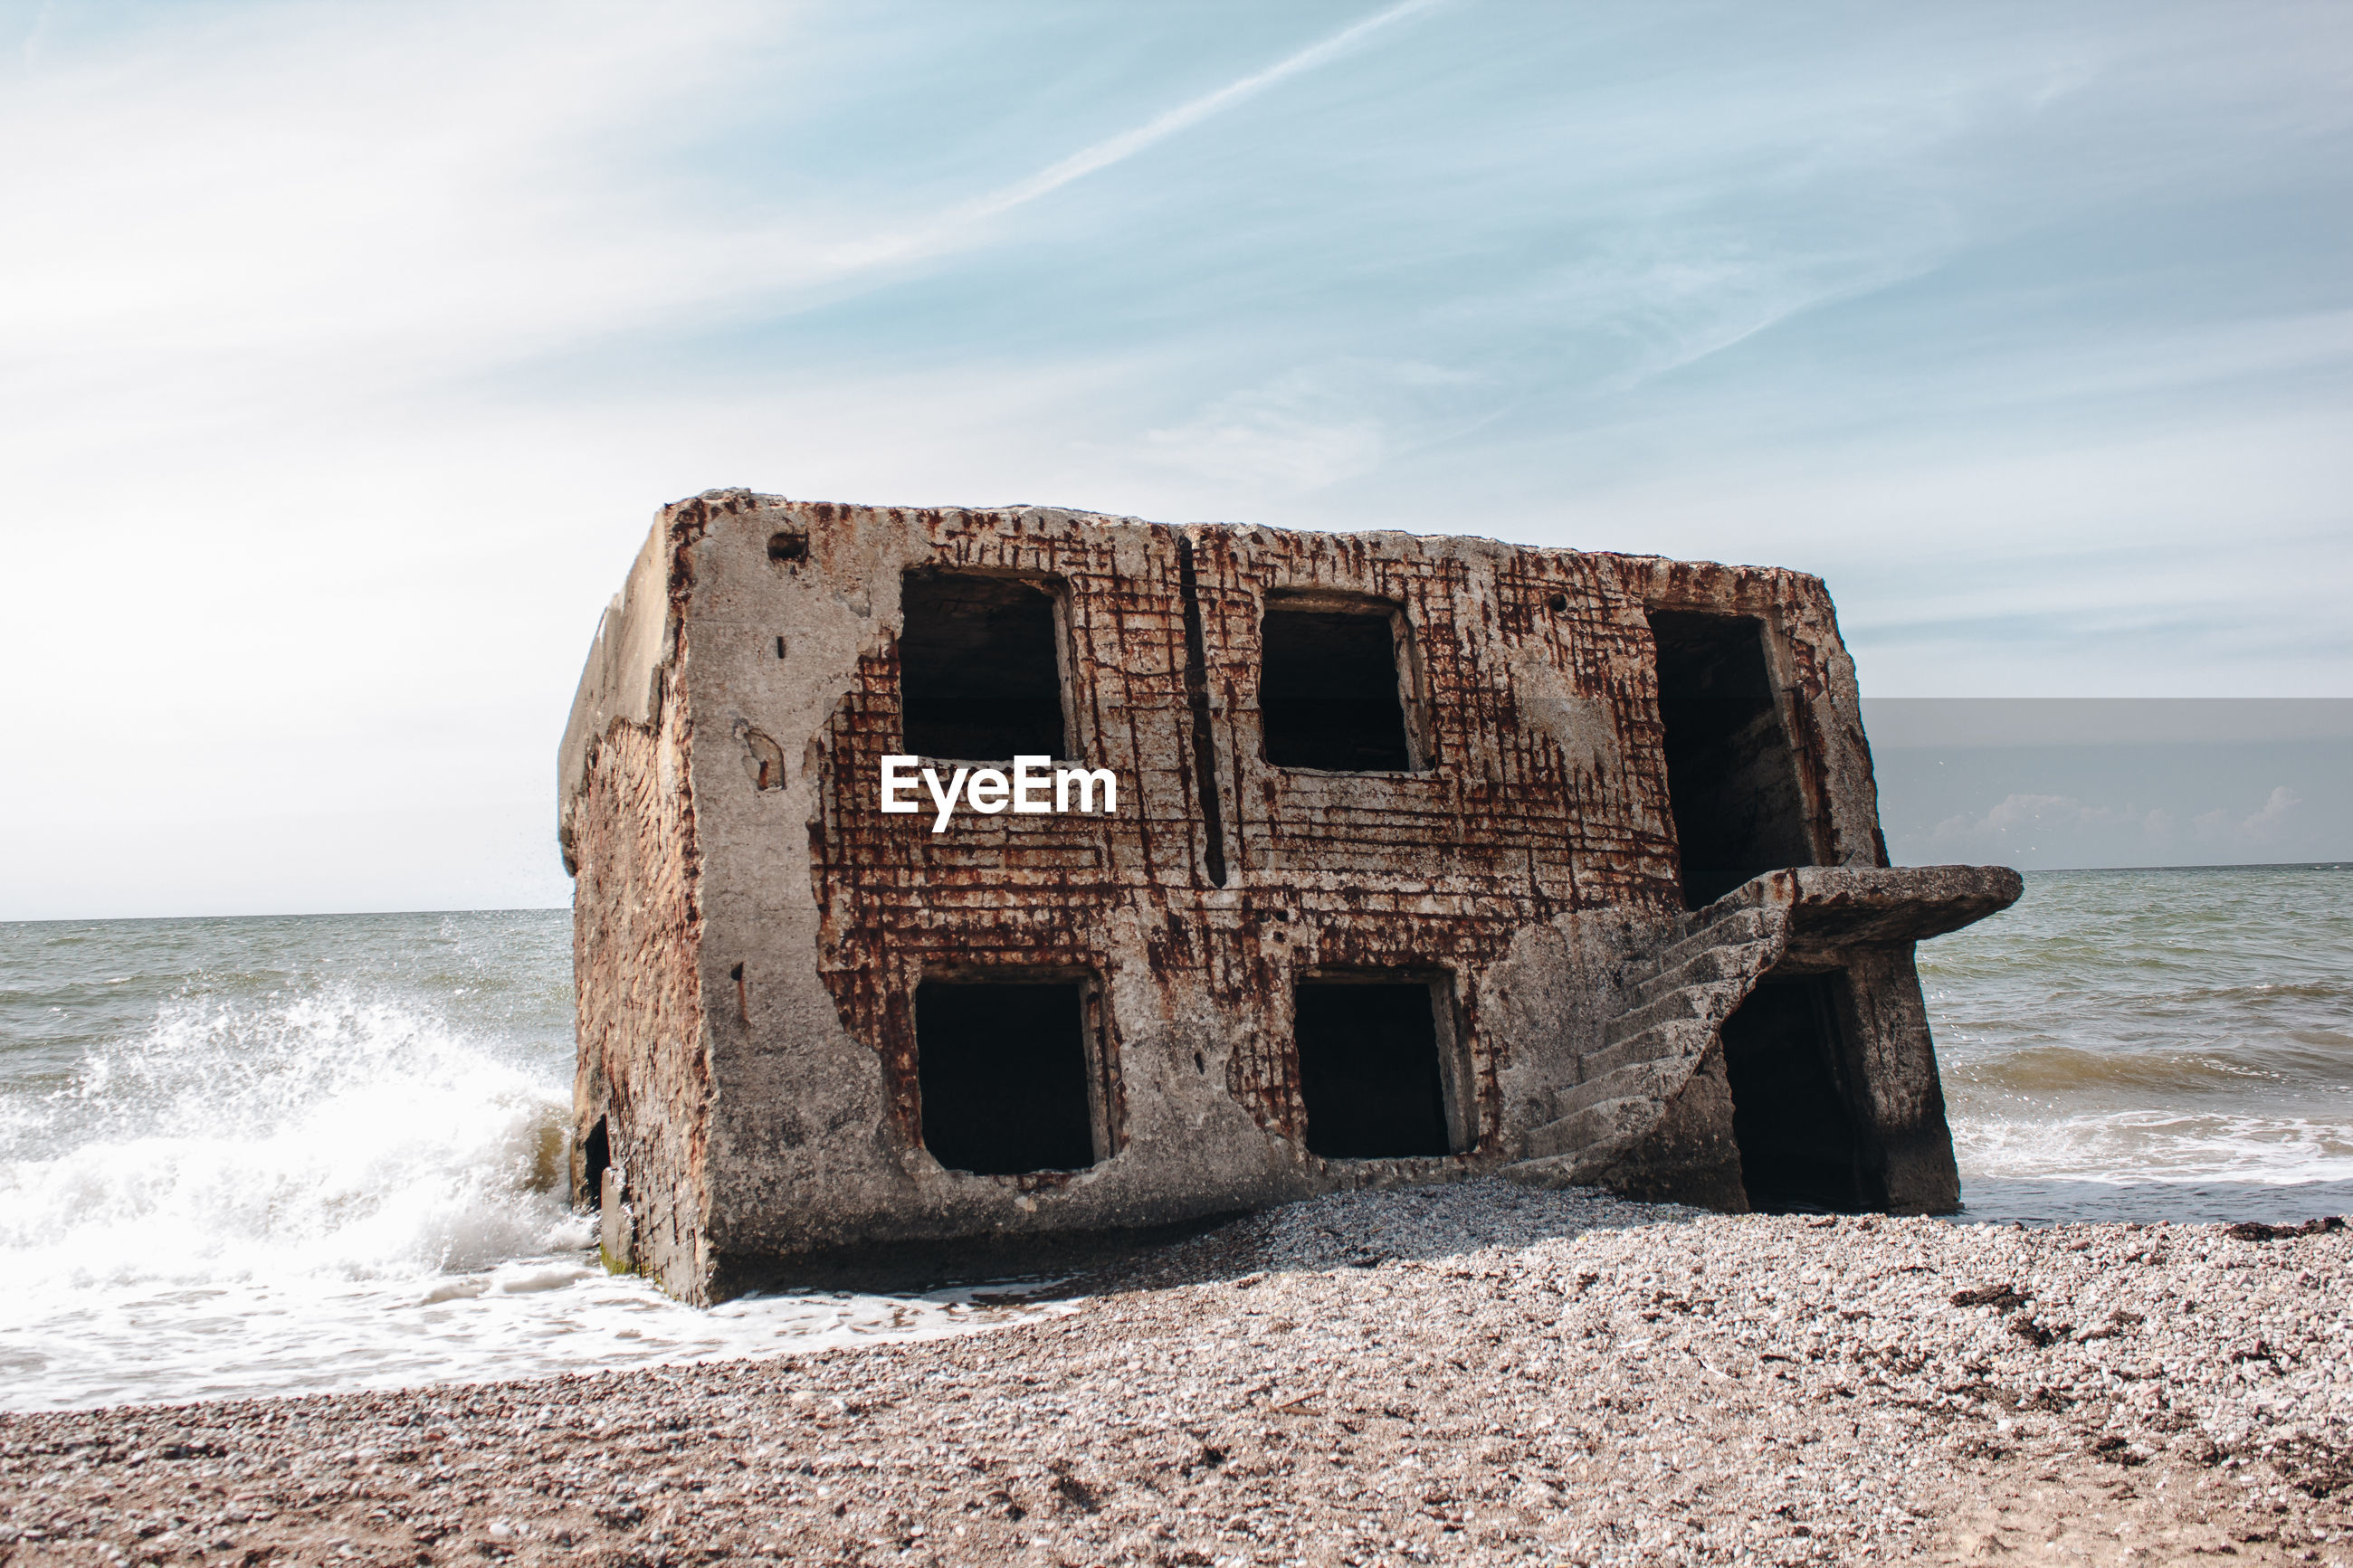 ABANDONED BUILT STRUCTURE ON BEACH